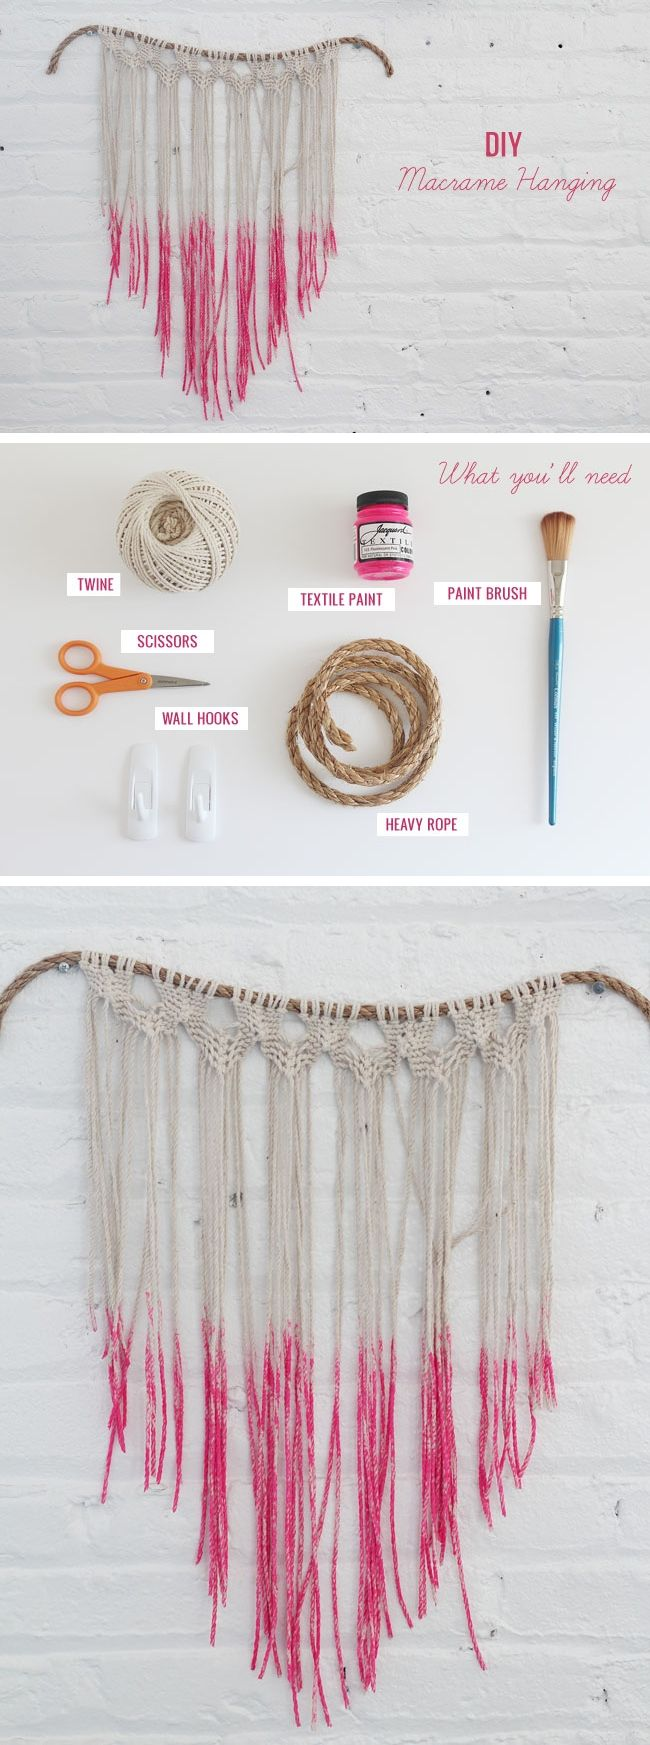 DIY macrame wall hanging ~ step-by-step instructions with plenty of photos . . . .